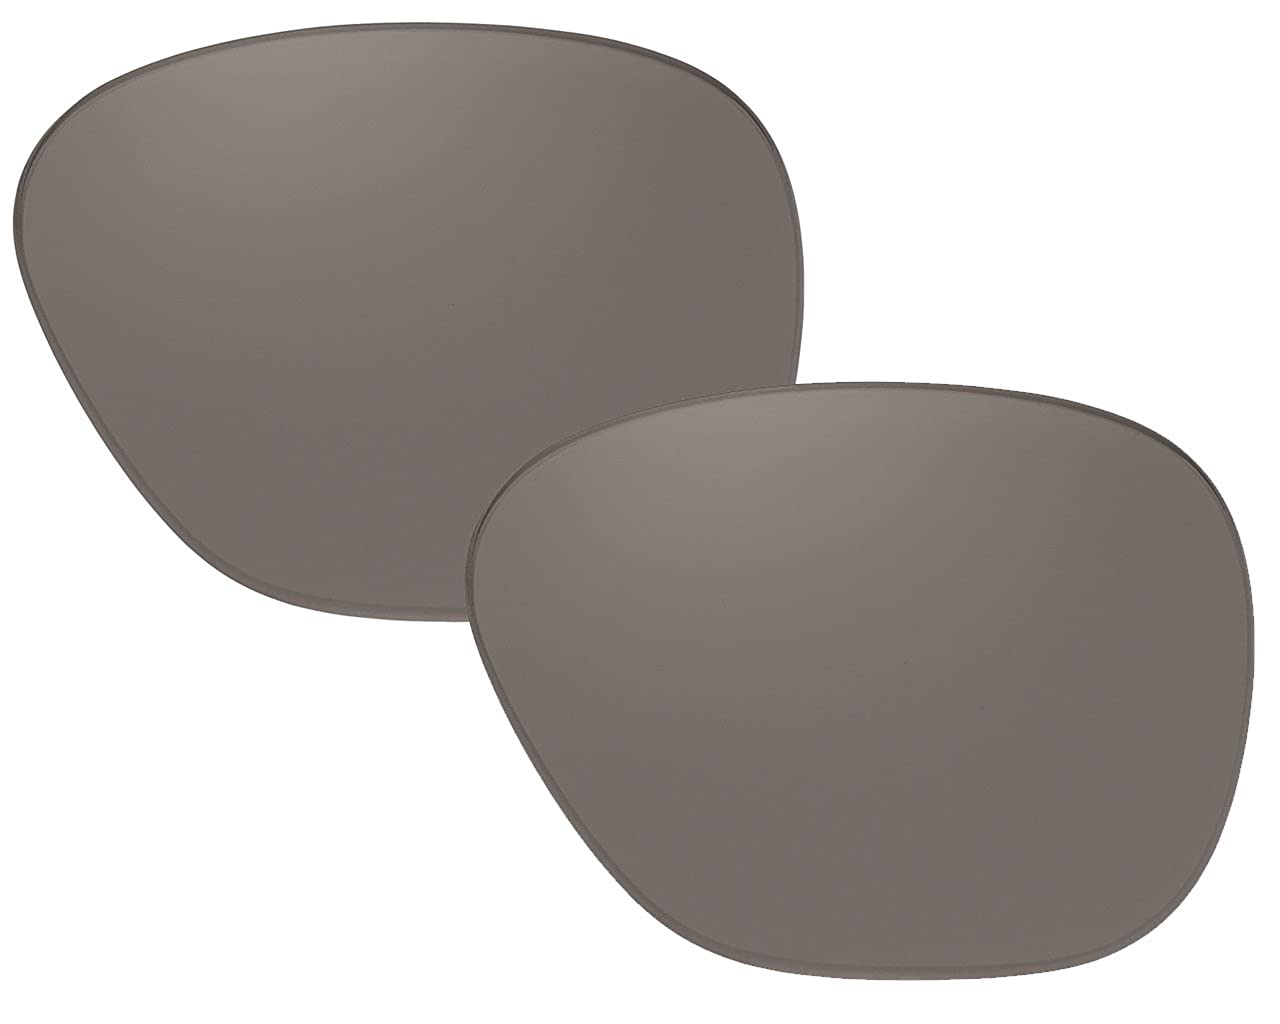 18b65498d95 Amazon.com  Suncloud Optics Star Authentic Replacement Polarized Lenses  (Grey Lens)  Clothing